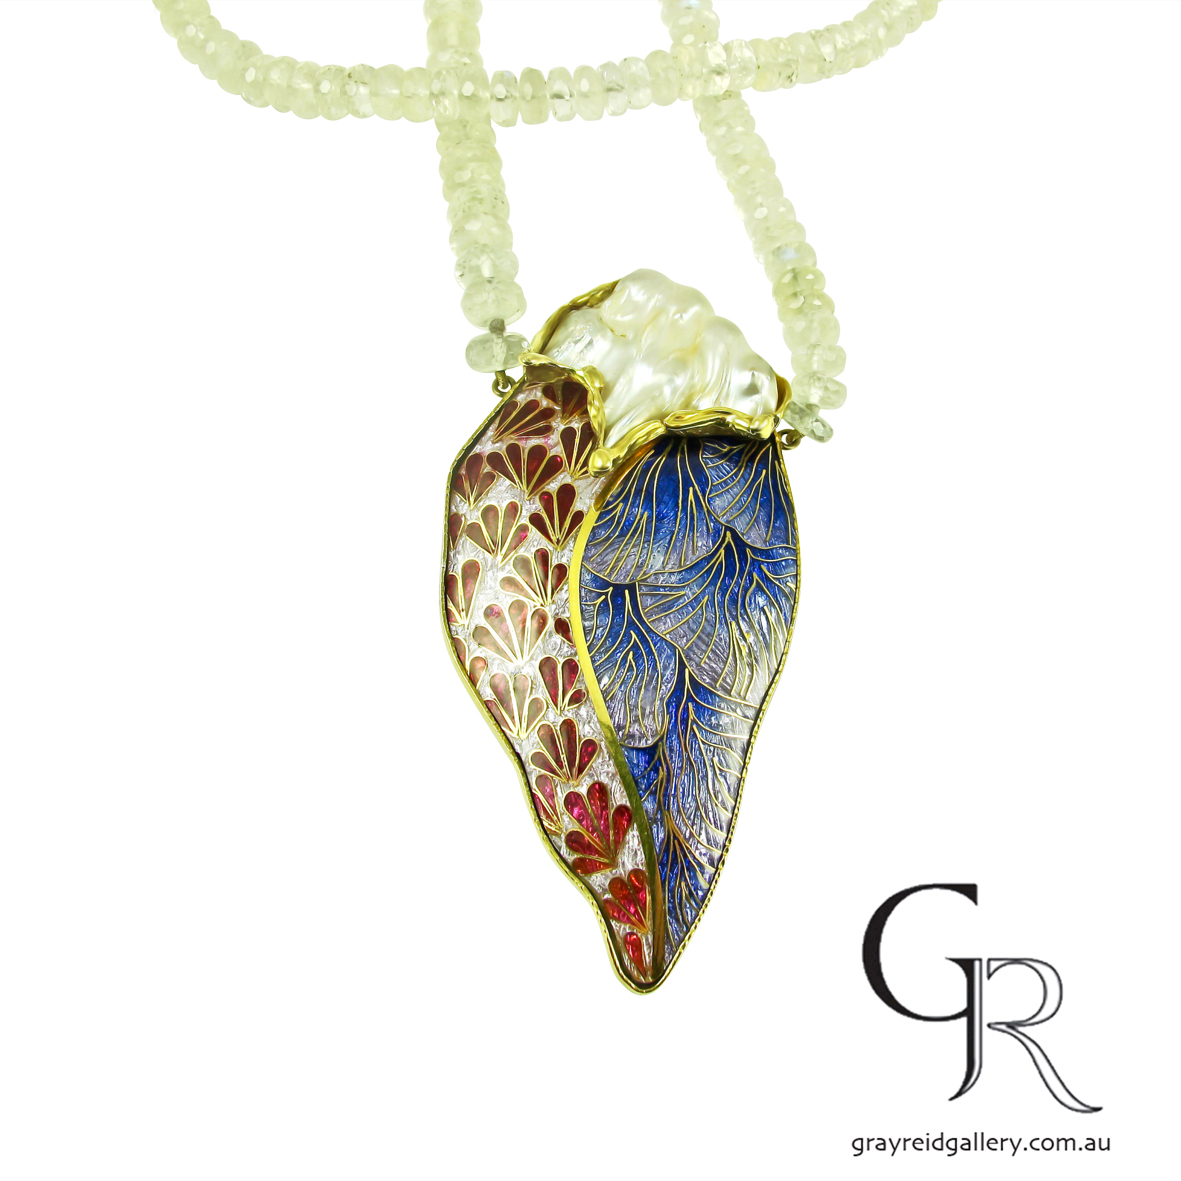 Enamel Pendant. Gold Cloisonné On Moonstone Beads